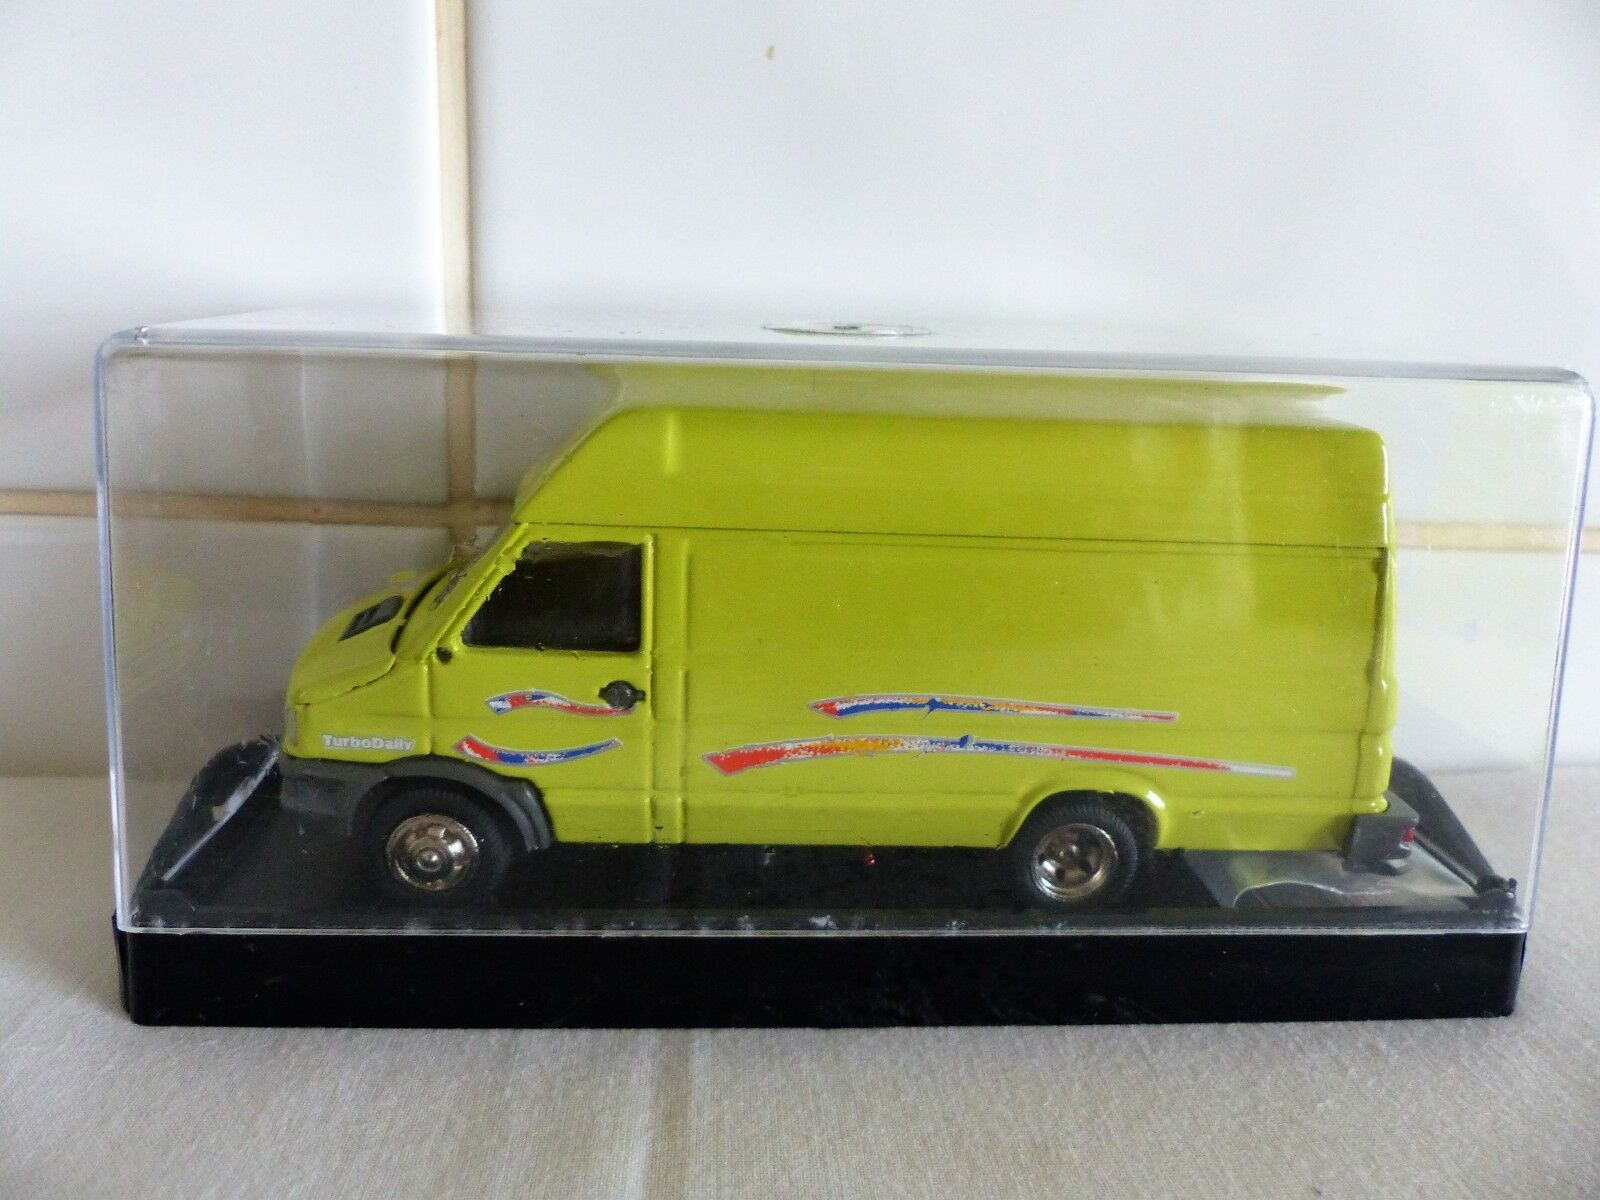 OLD-CARS MADE IN ITALY-FIAT IVECO TURBODAILY LARGE PANEL VAN-MINT & BOXED MODEL